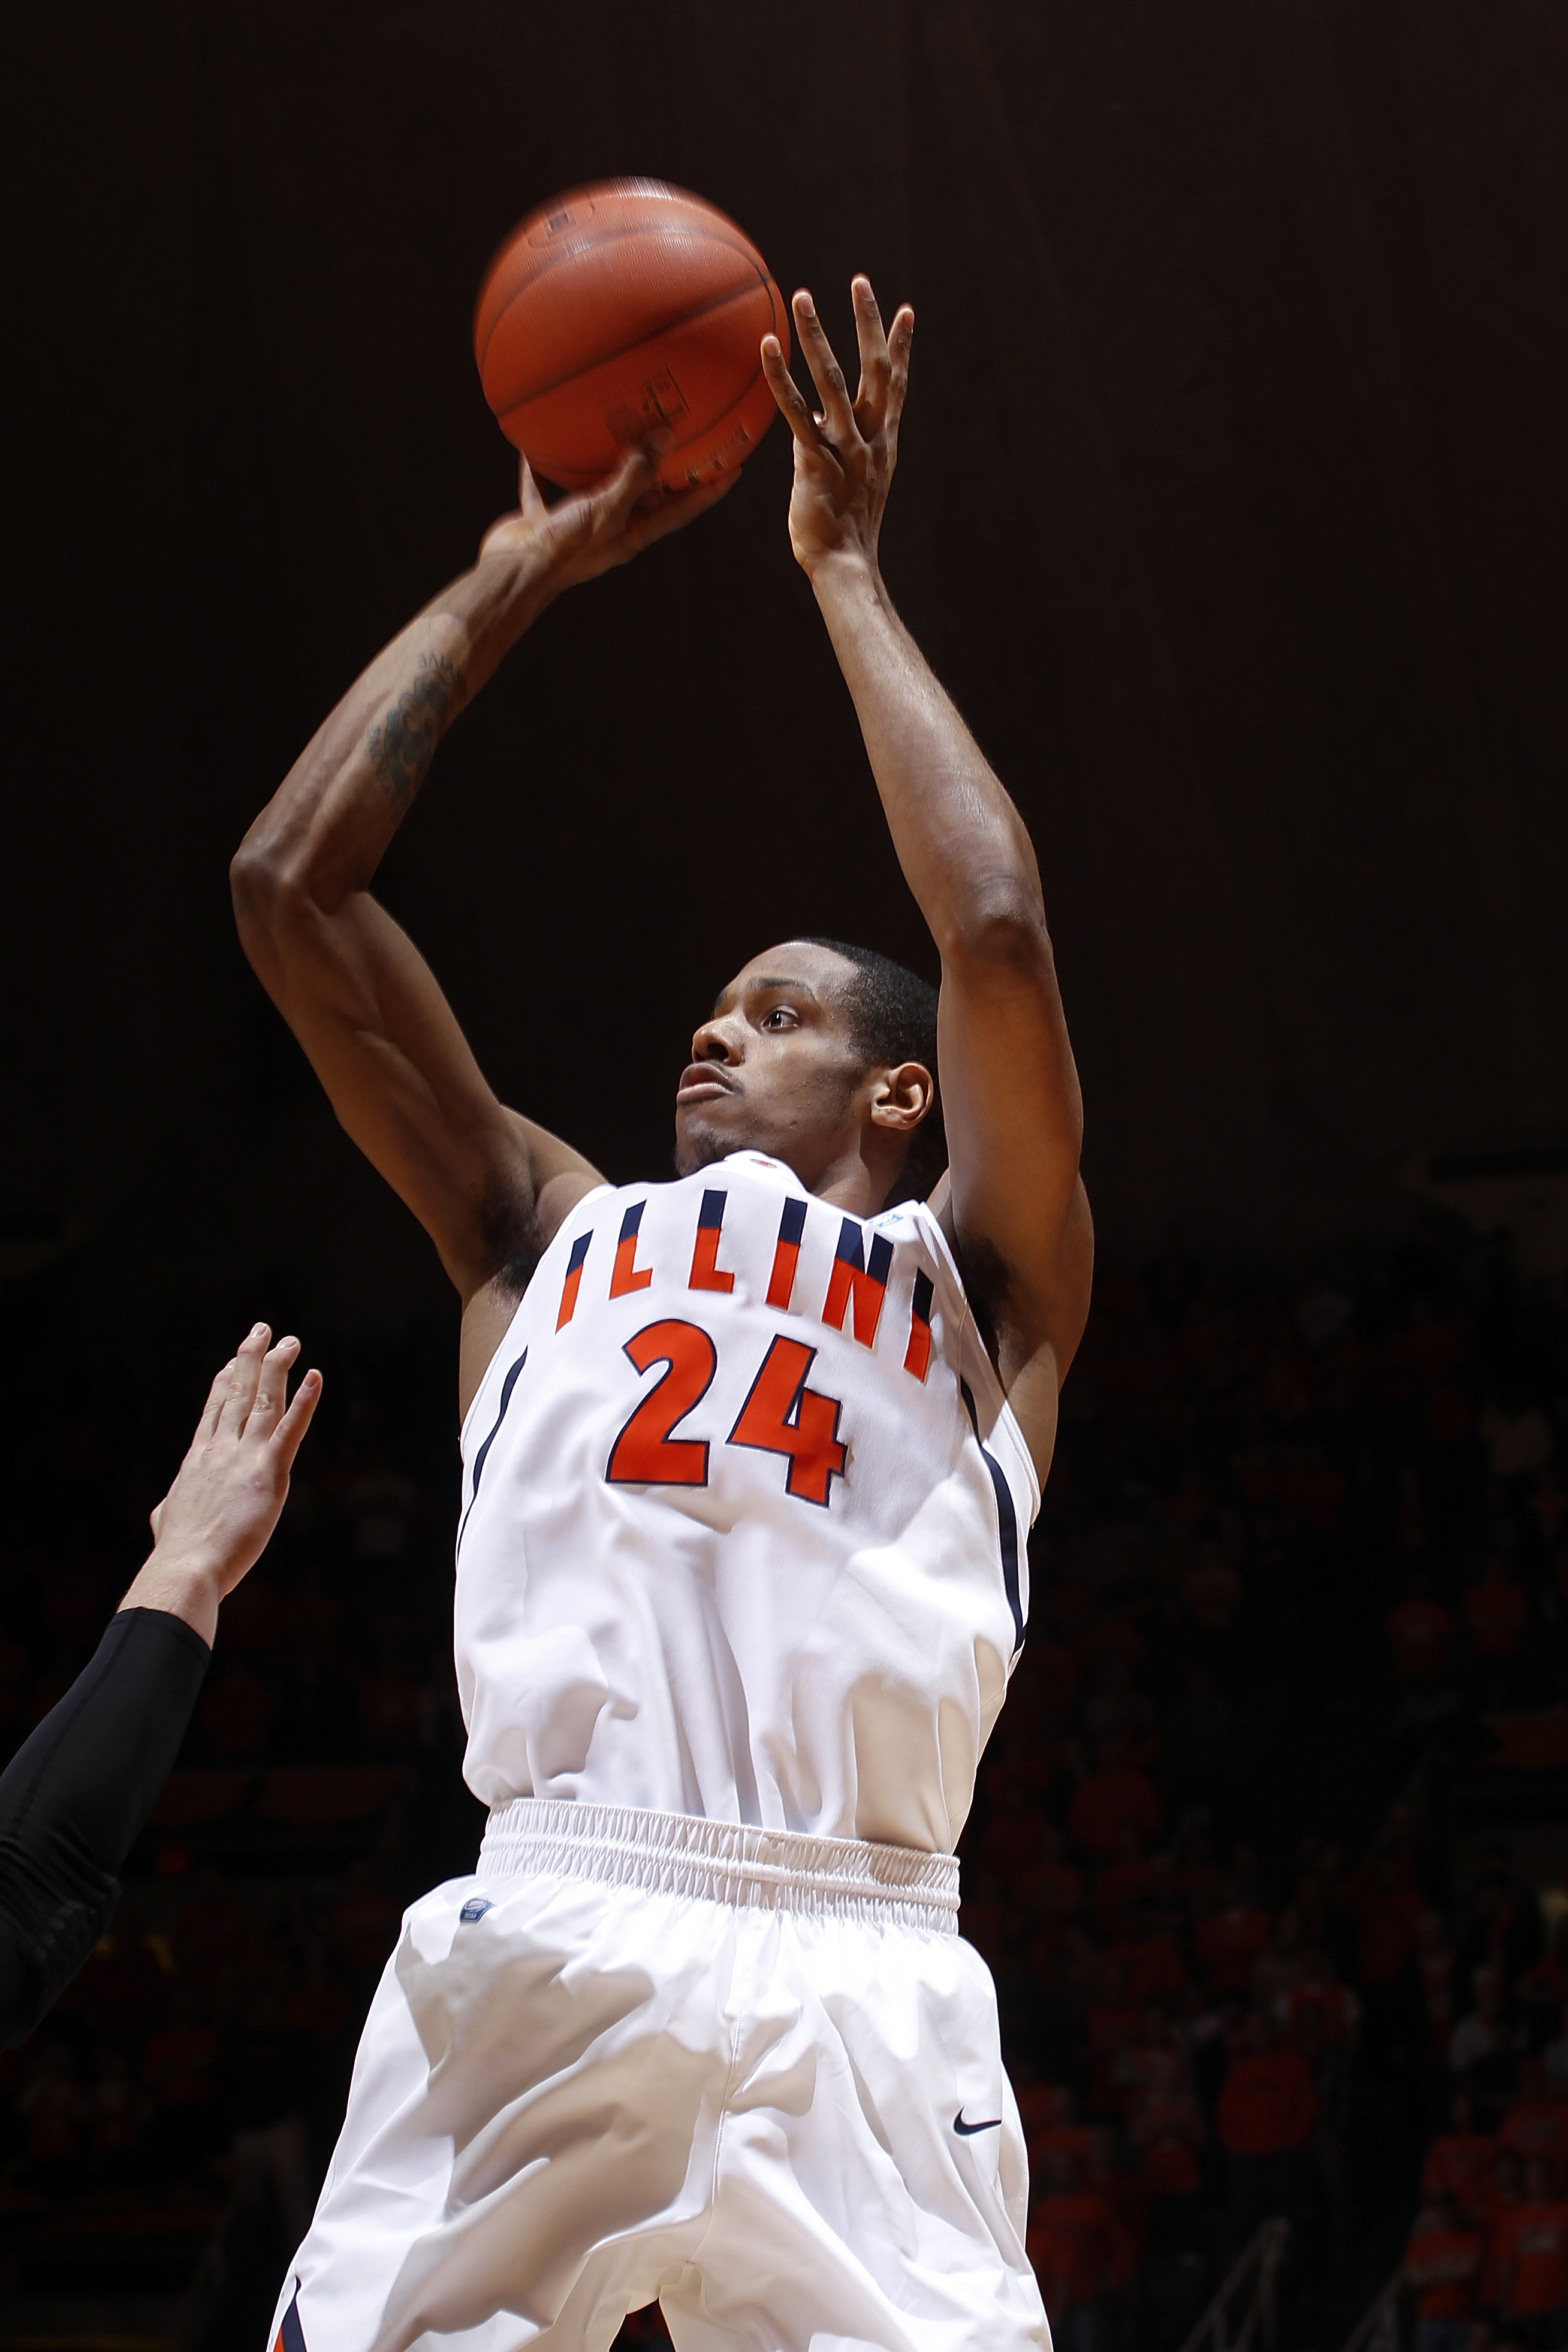 Mike Davis and the Illini hope there's no repeat NIT performance.